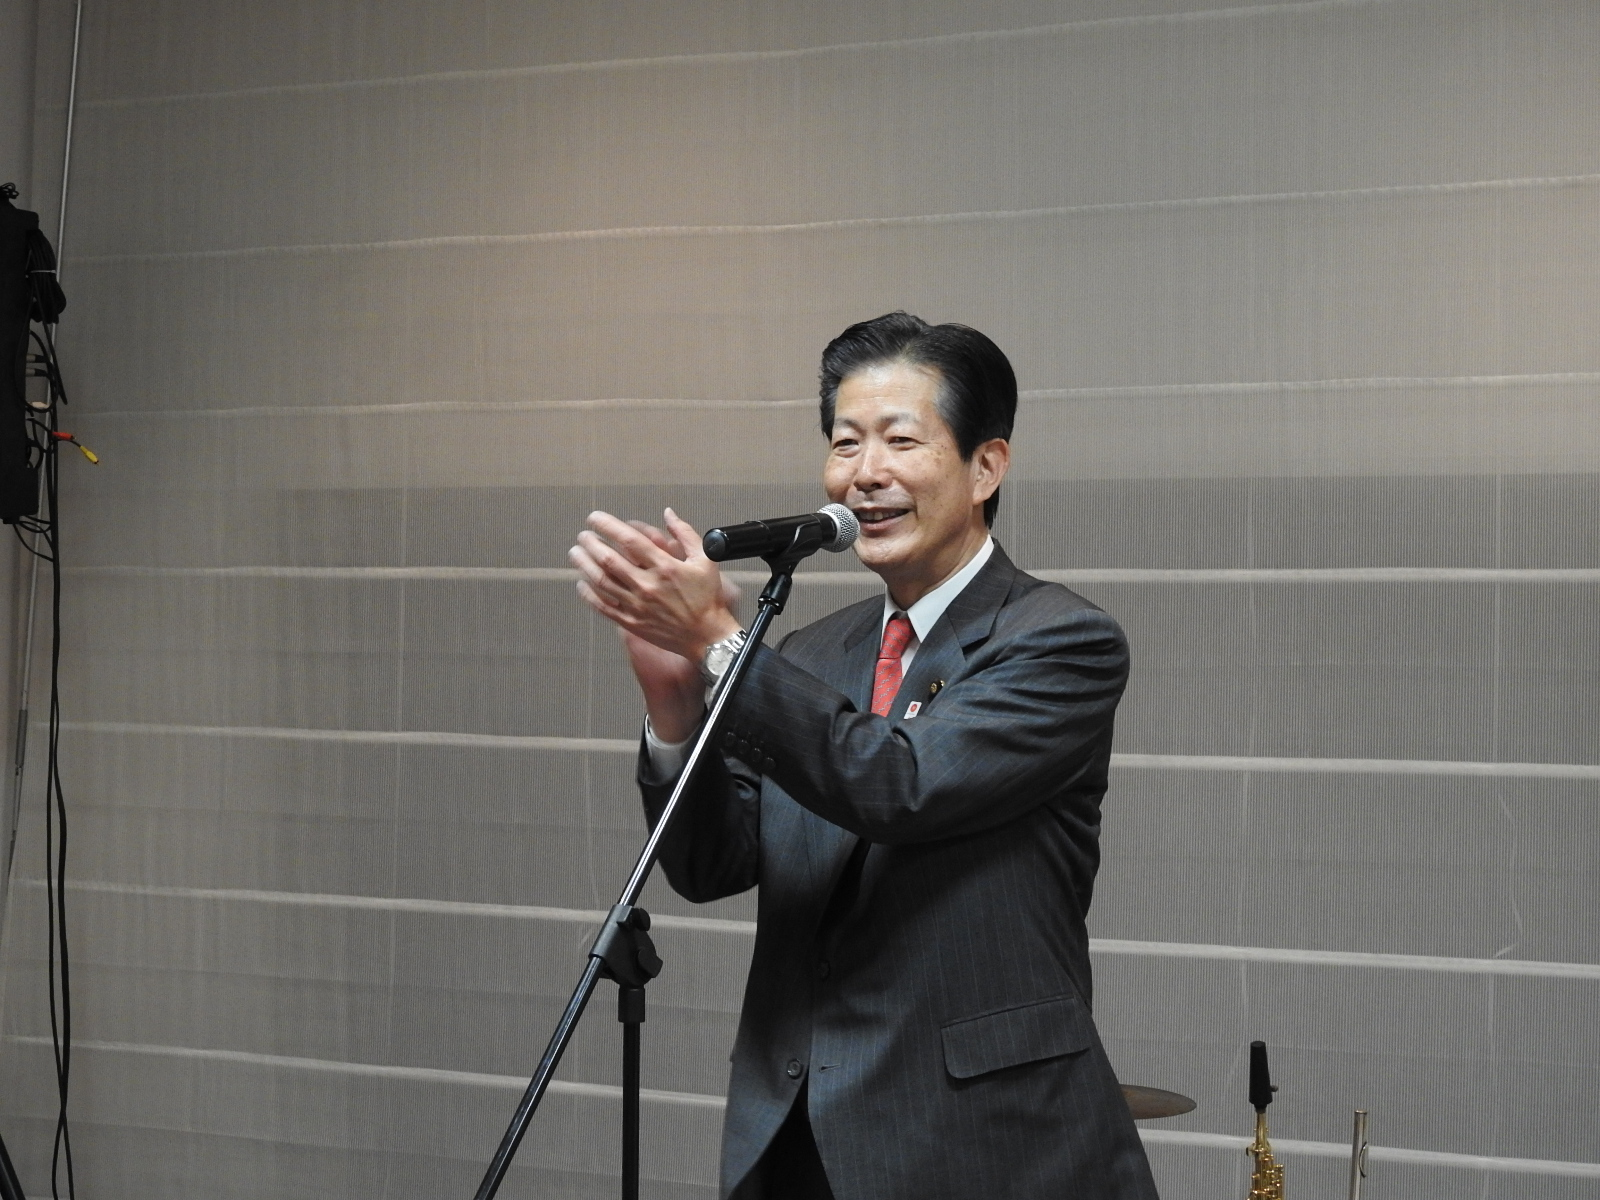 Mr. Natsuo Yamaguchi, member of the House of Councillors and the President of New Komeito Party, expressing his gratitude as a representative of parliament